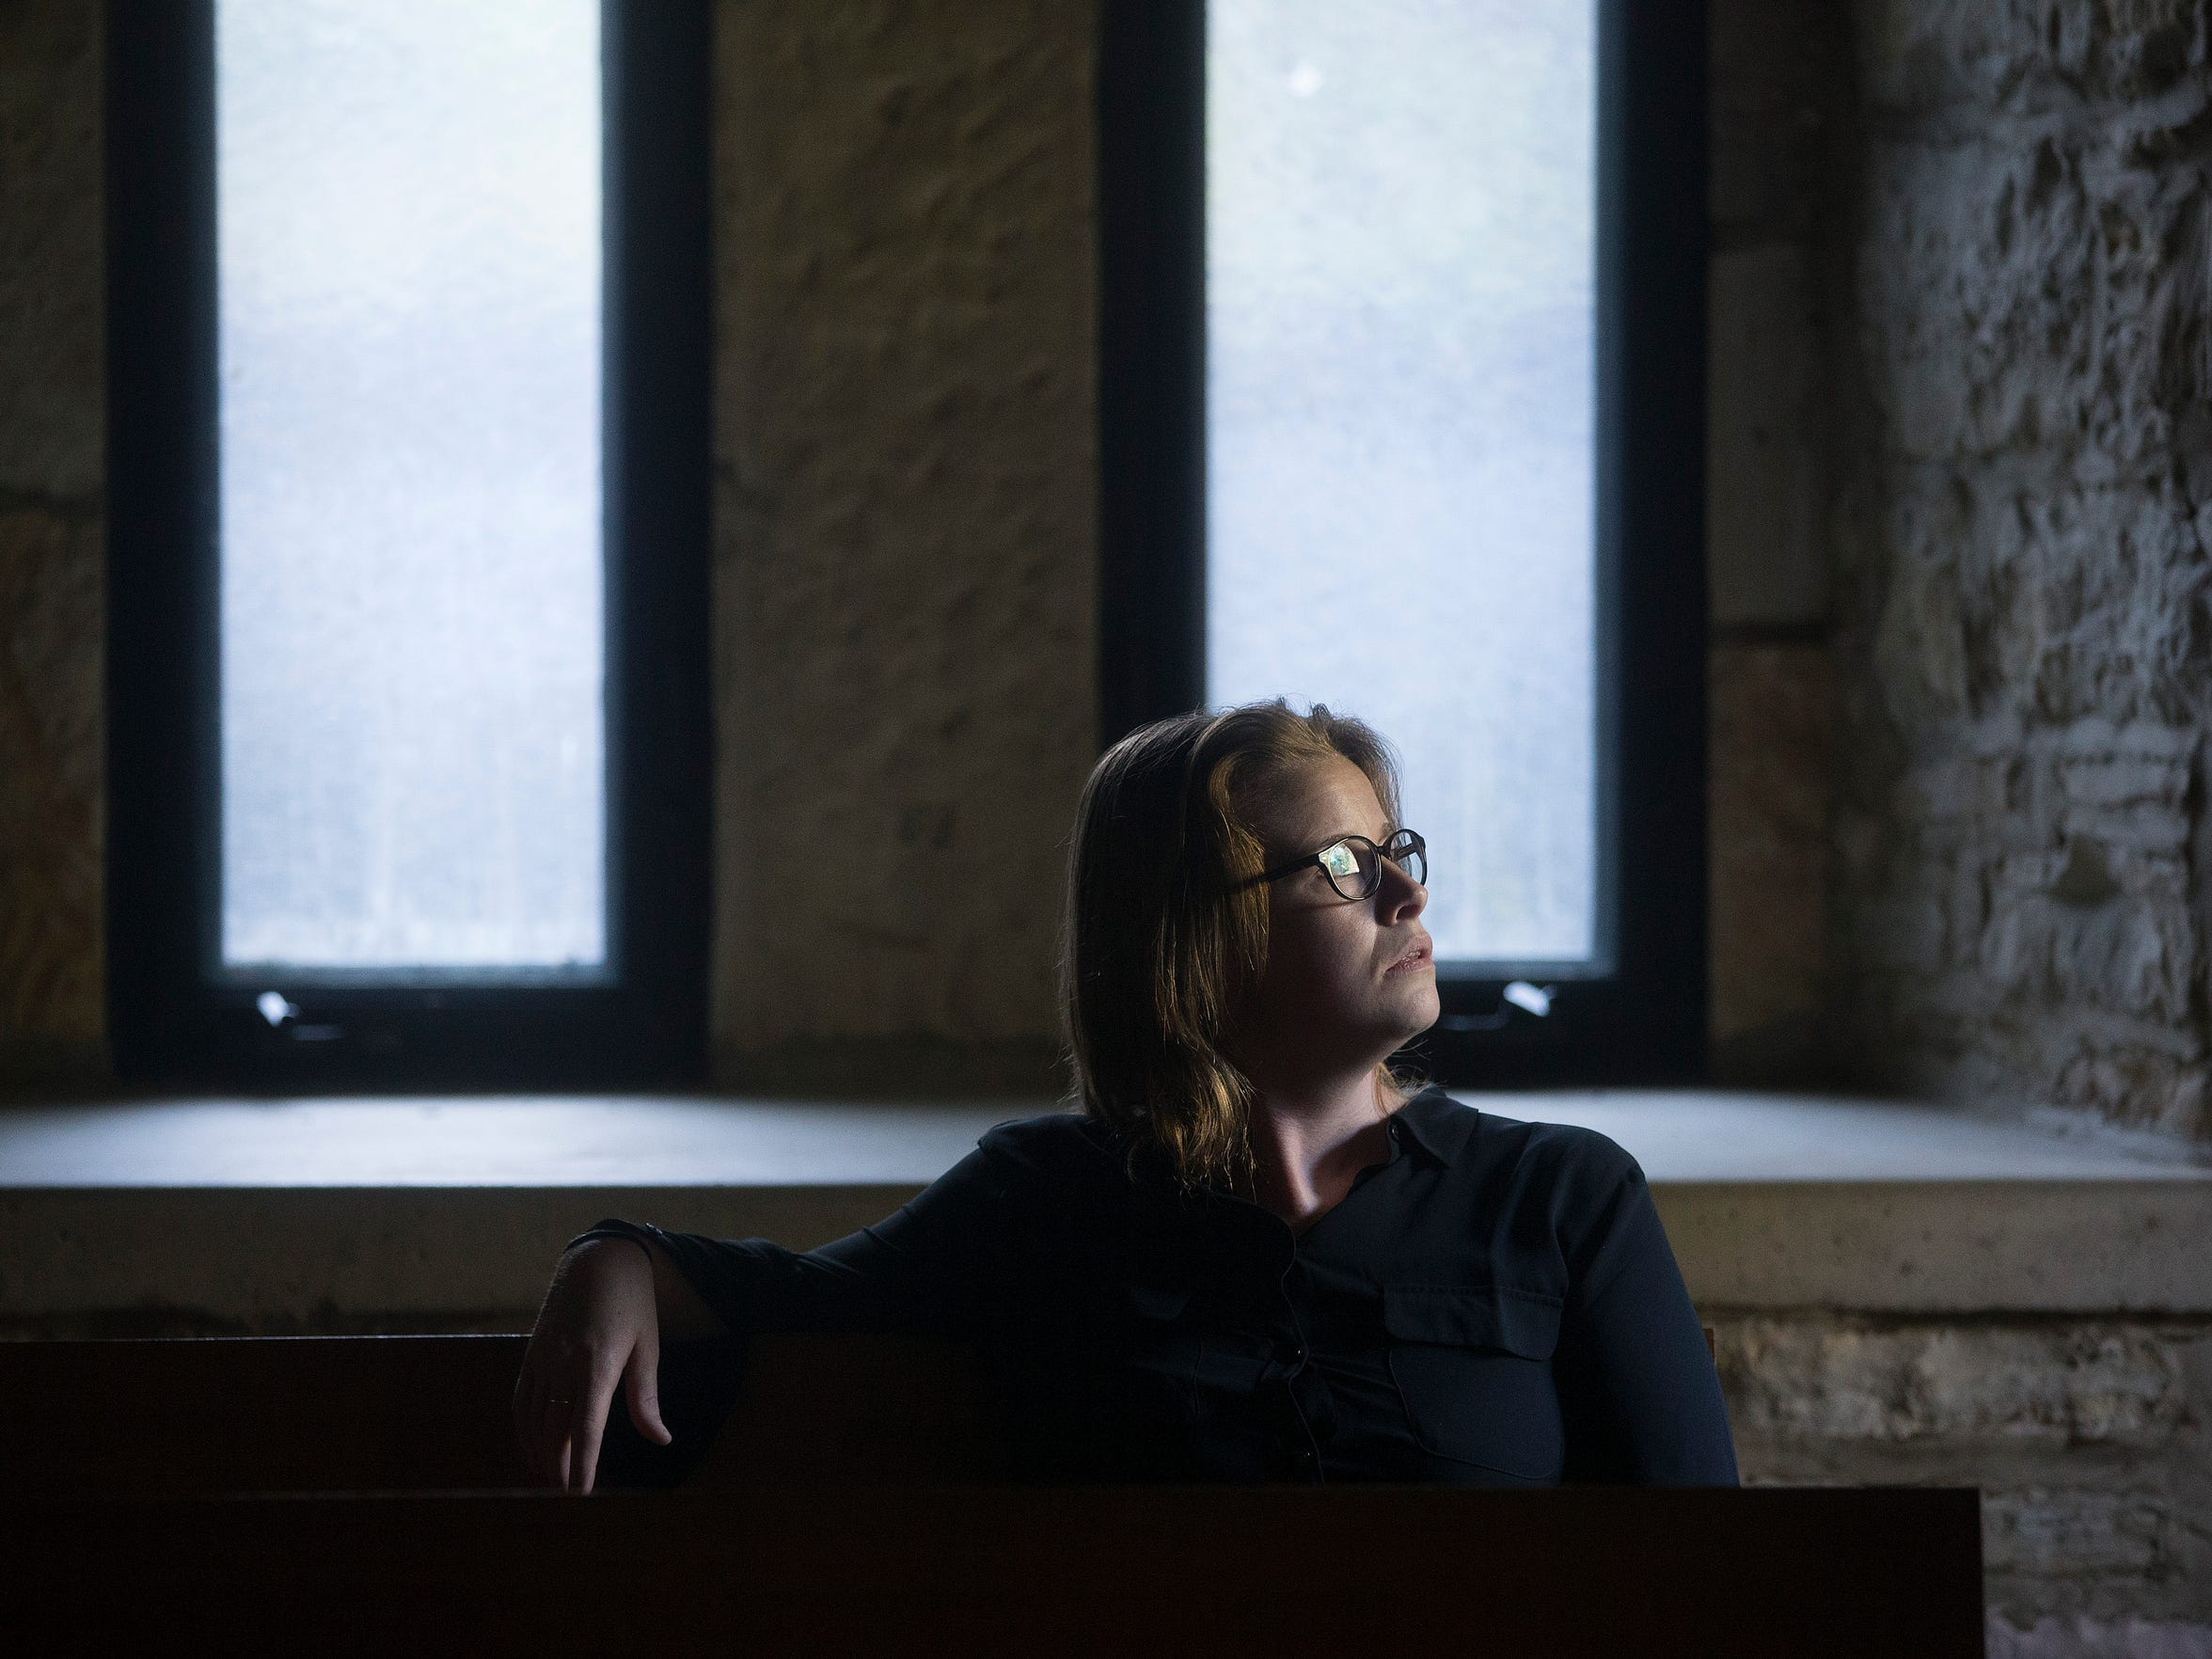 Ames native Cassidy Hall seeks silence in the guest chapel during a retreat at New Melleray Abbey in Peosta, Iowa, Wednesday, Sept. 9, 2015.